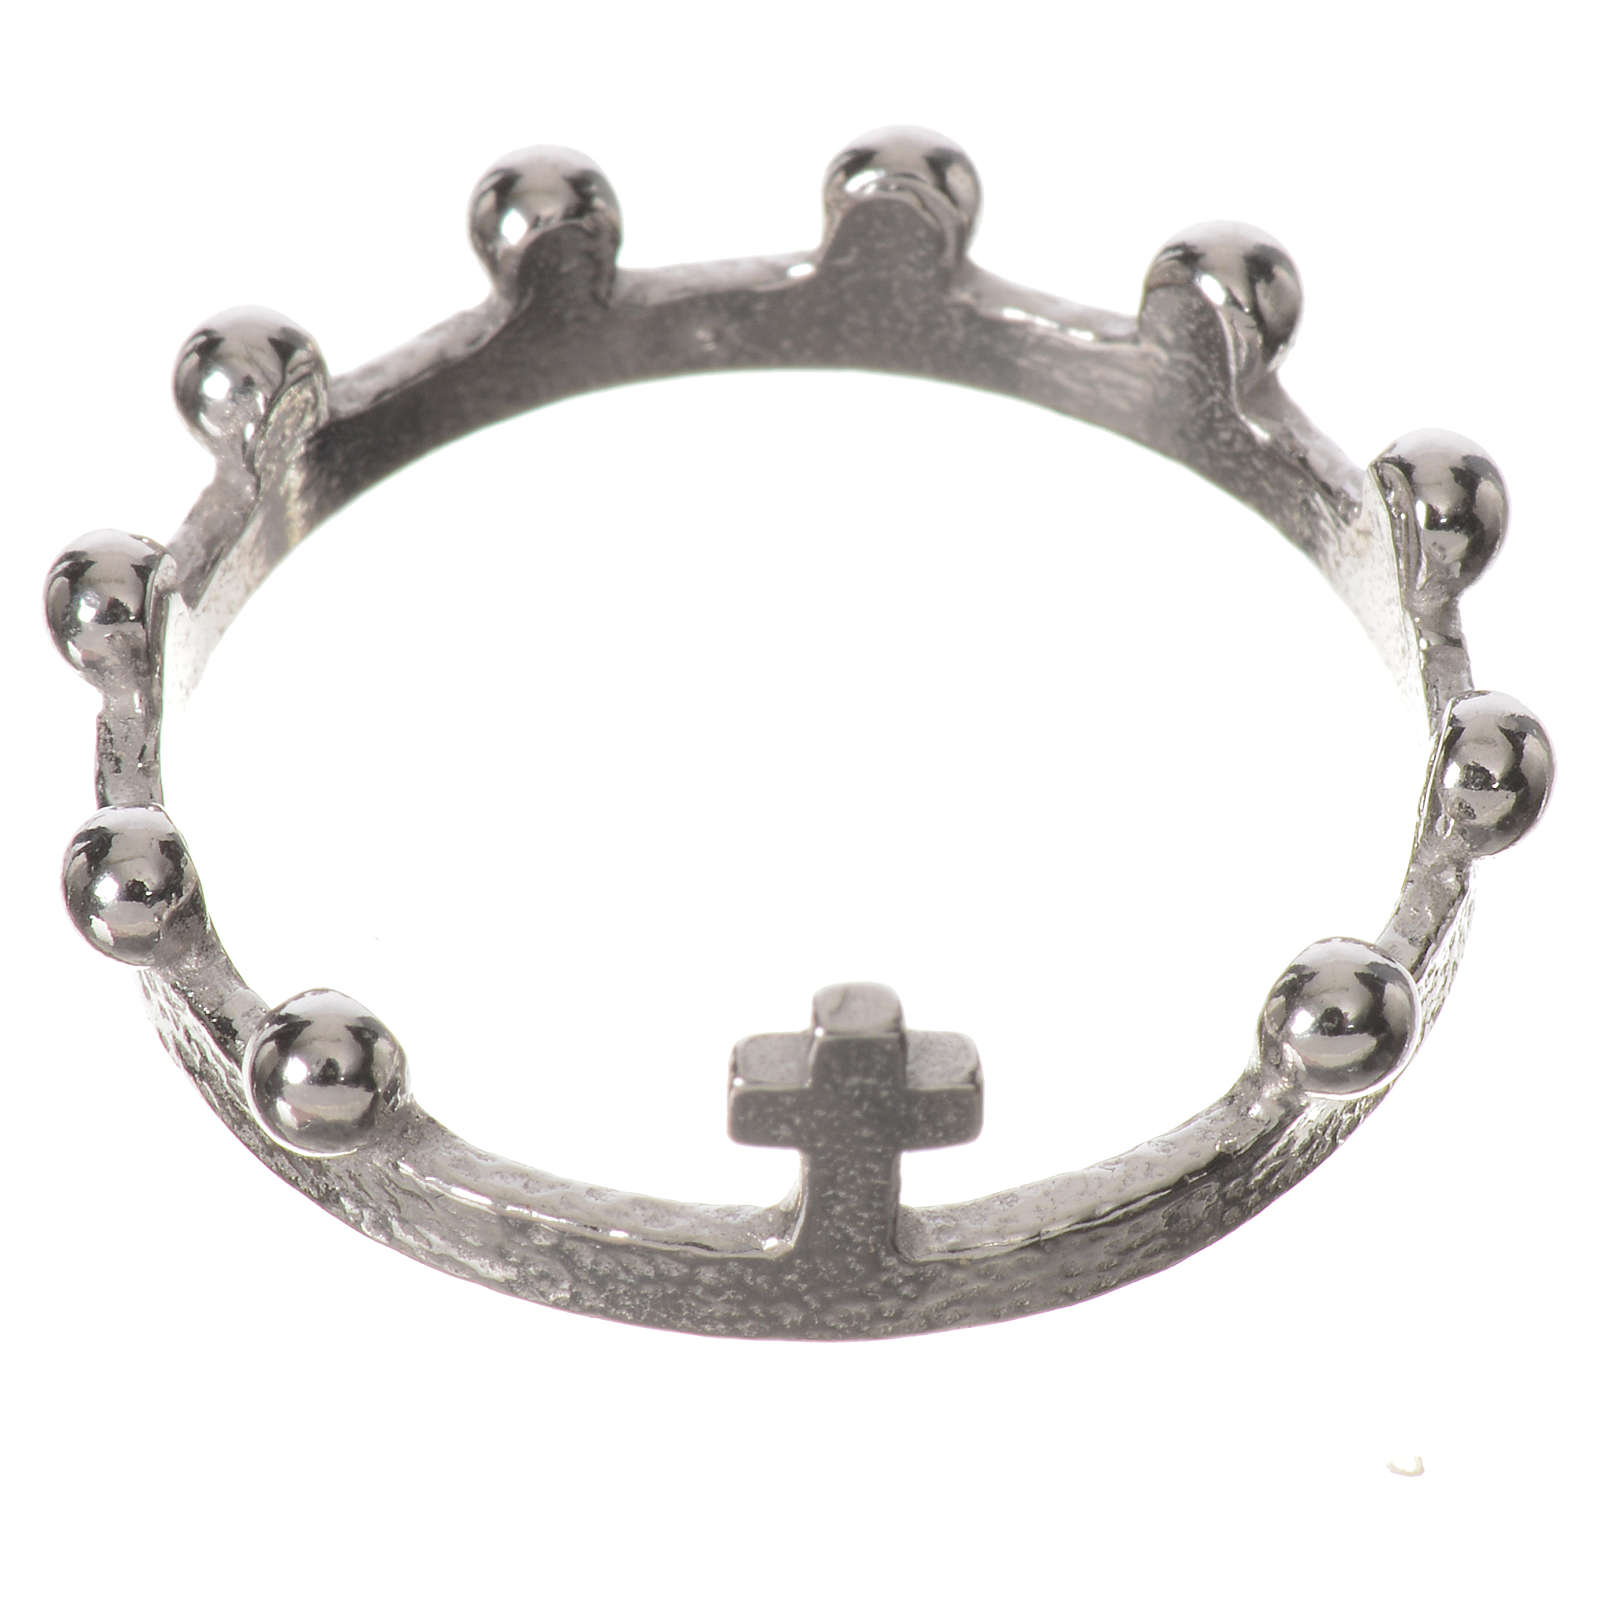 Single decade prayer ring in 925 silver 3